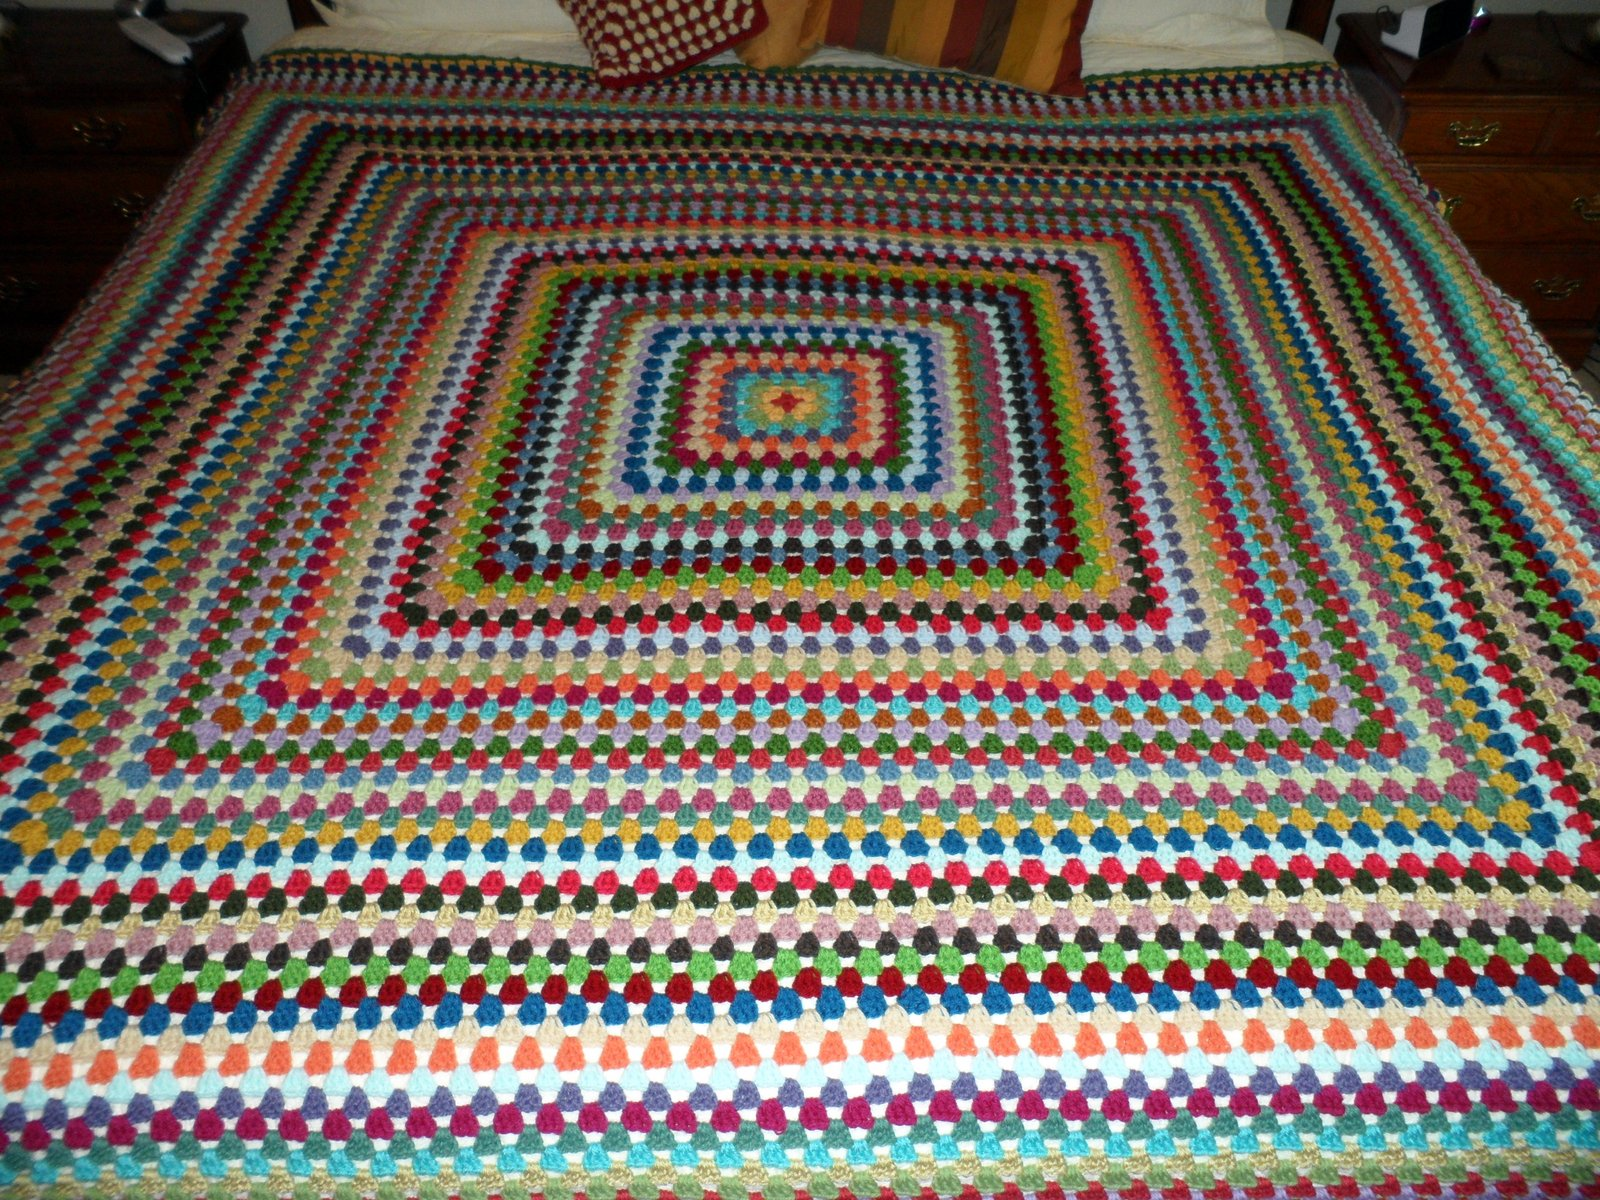 Free Crochet Pattern For Giant Granny Square Afghan : Easy Crochet Pattern: Giant Crocheted Granny Afghan